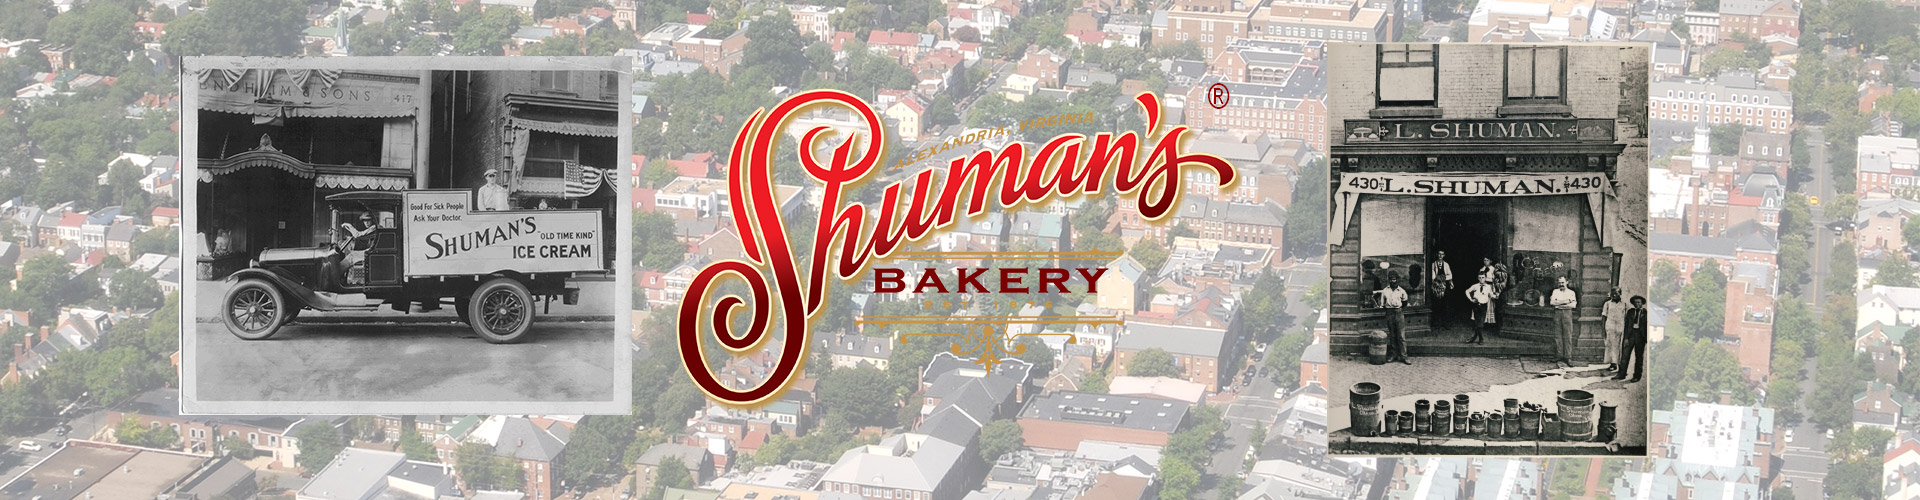 Shumans-Bakery-home-banner